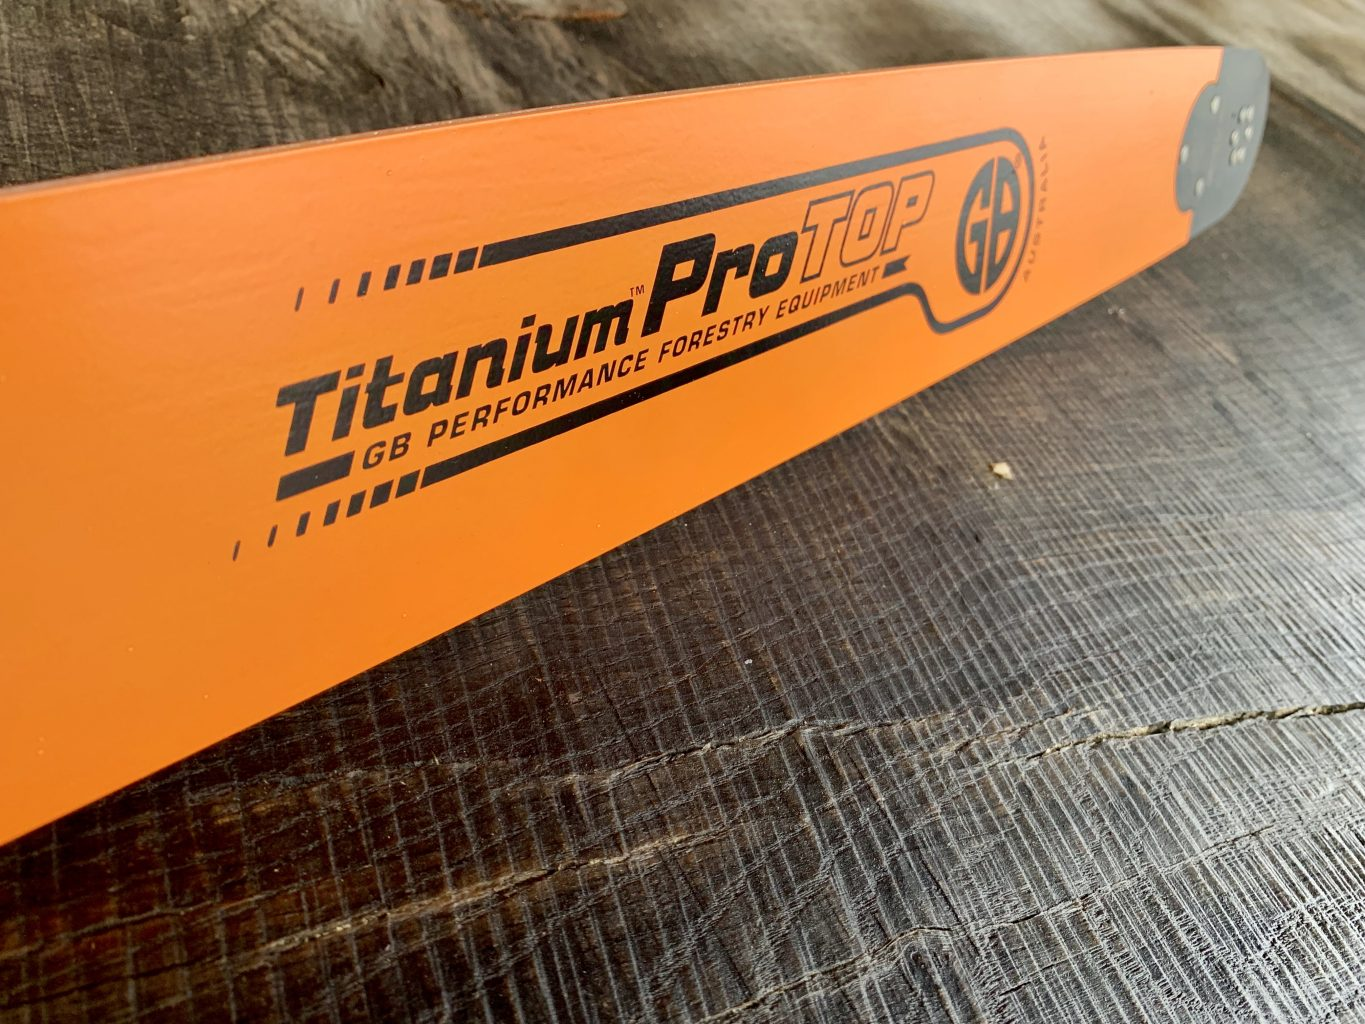 "HSS48-50WR 48""[122cm] GB Lo Pro Milling Bar[Single Slot] 3/8 Lo Pro .050 153 drive links [Expected 30th August 2020]"